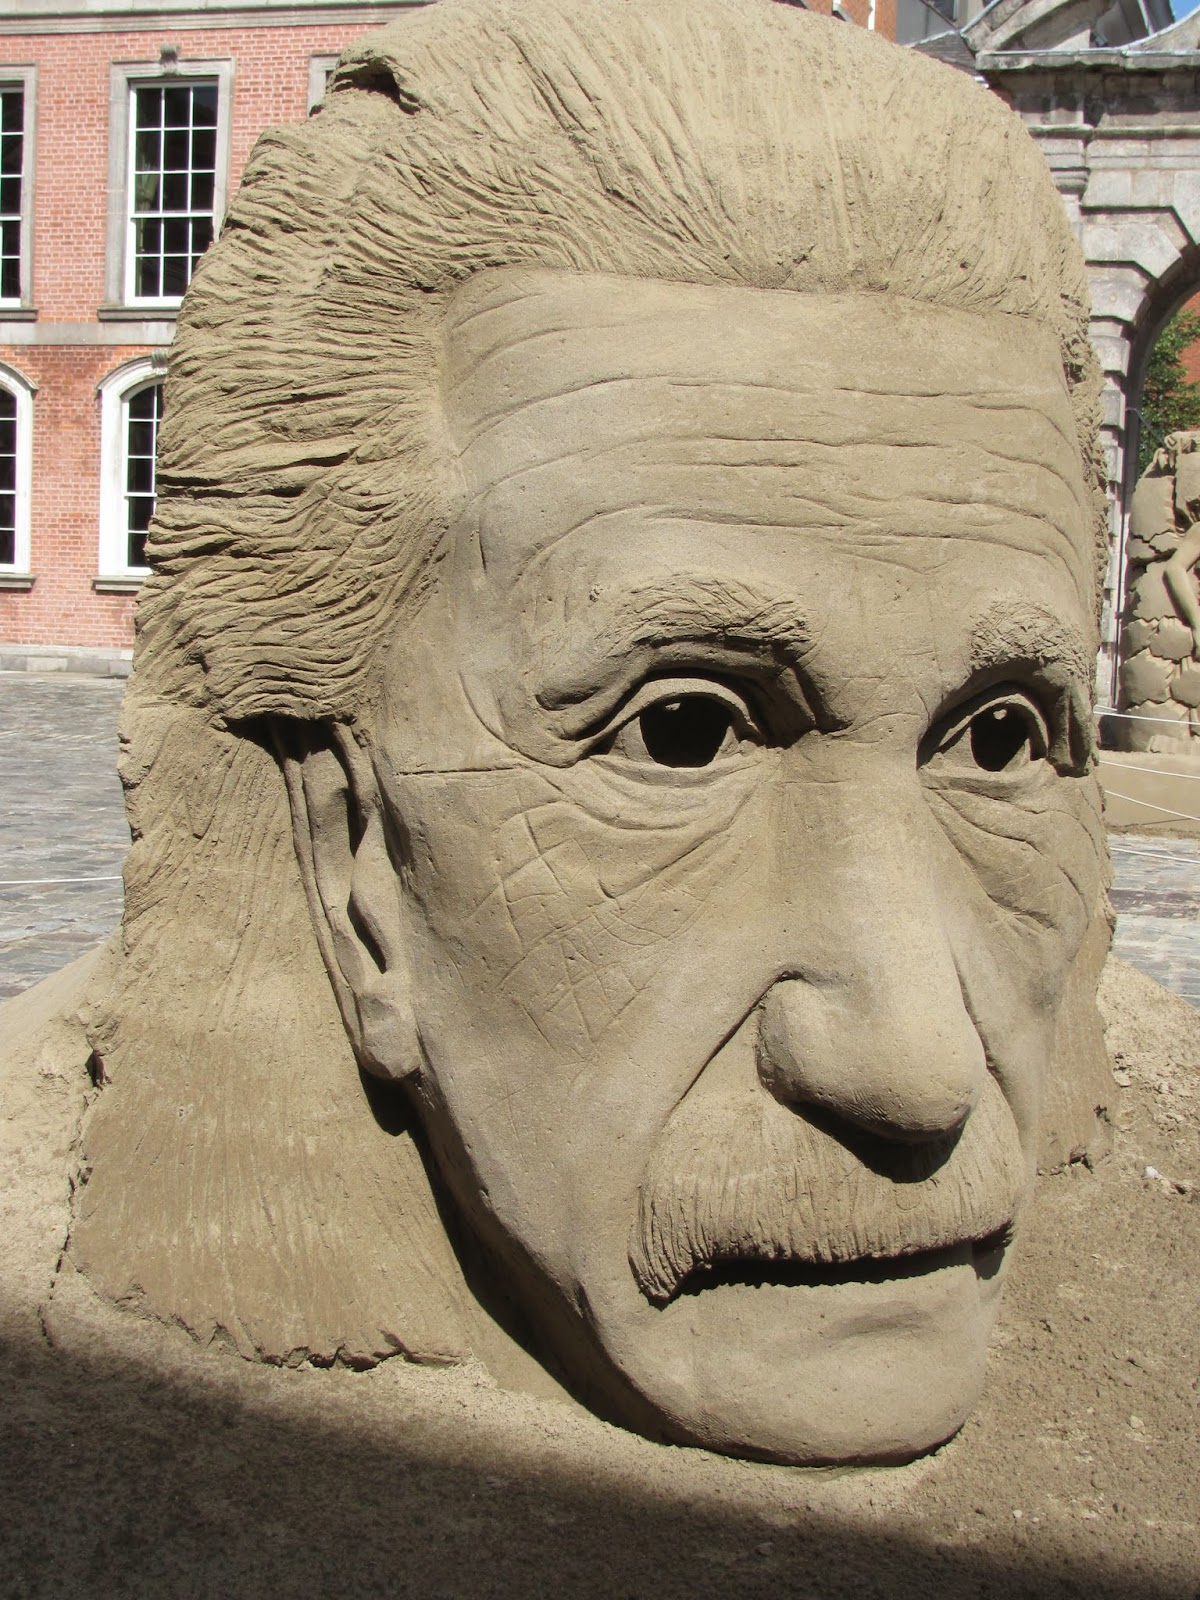 Larger-than-Life Face Dublin Castle Sand Sculptures 2014